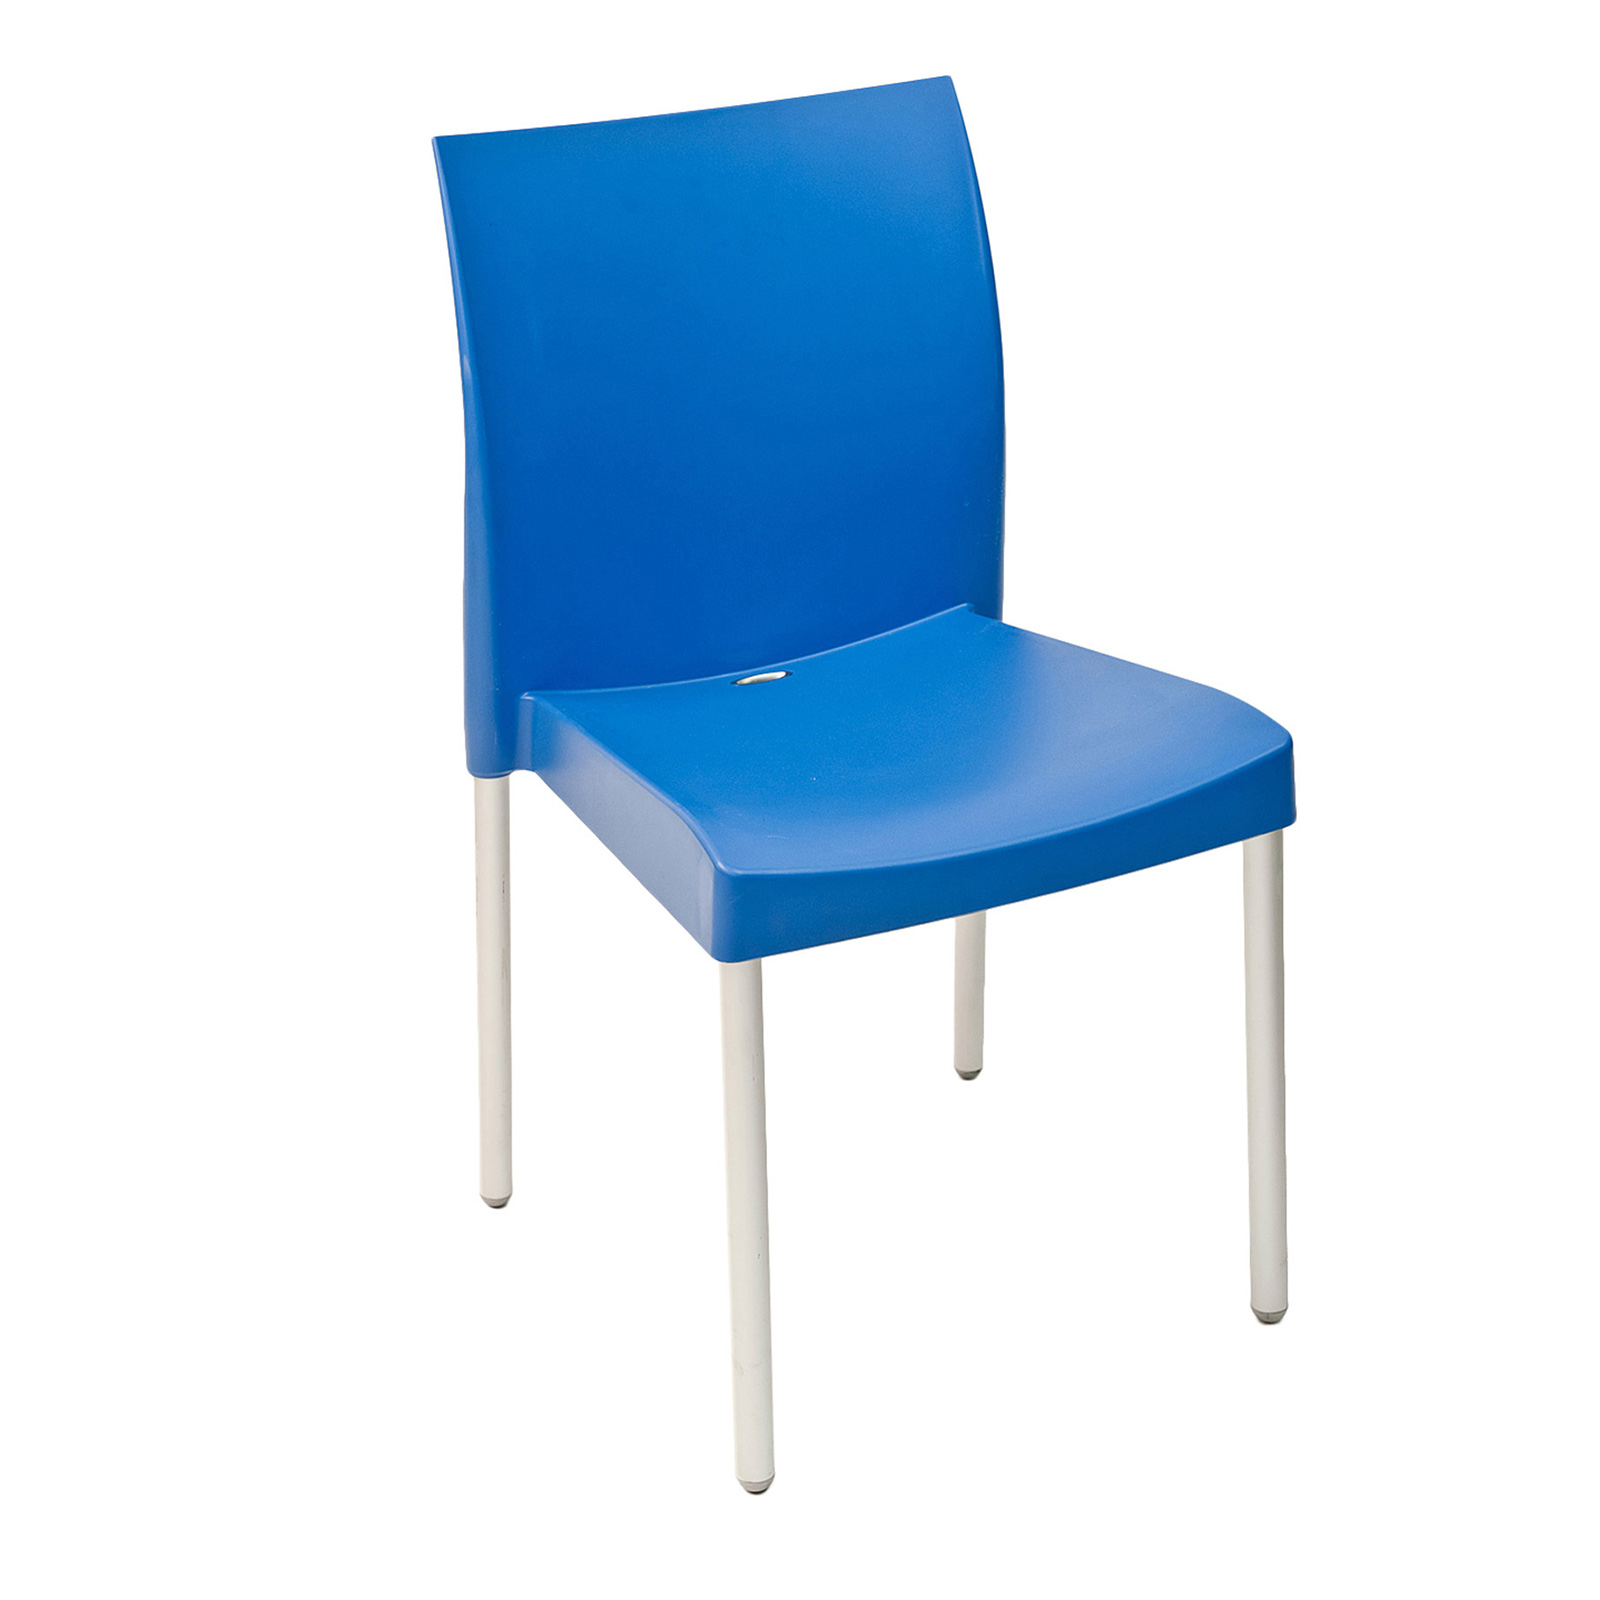 Florida Seating ICE-S/SKY chair, side, stacking, outdoor